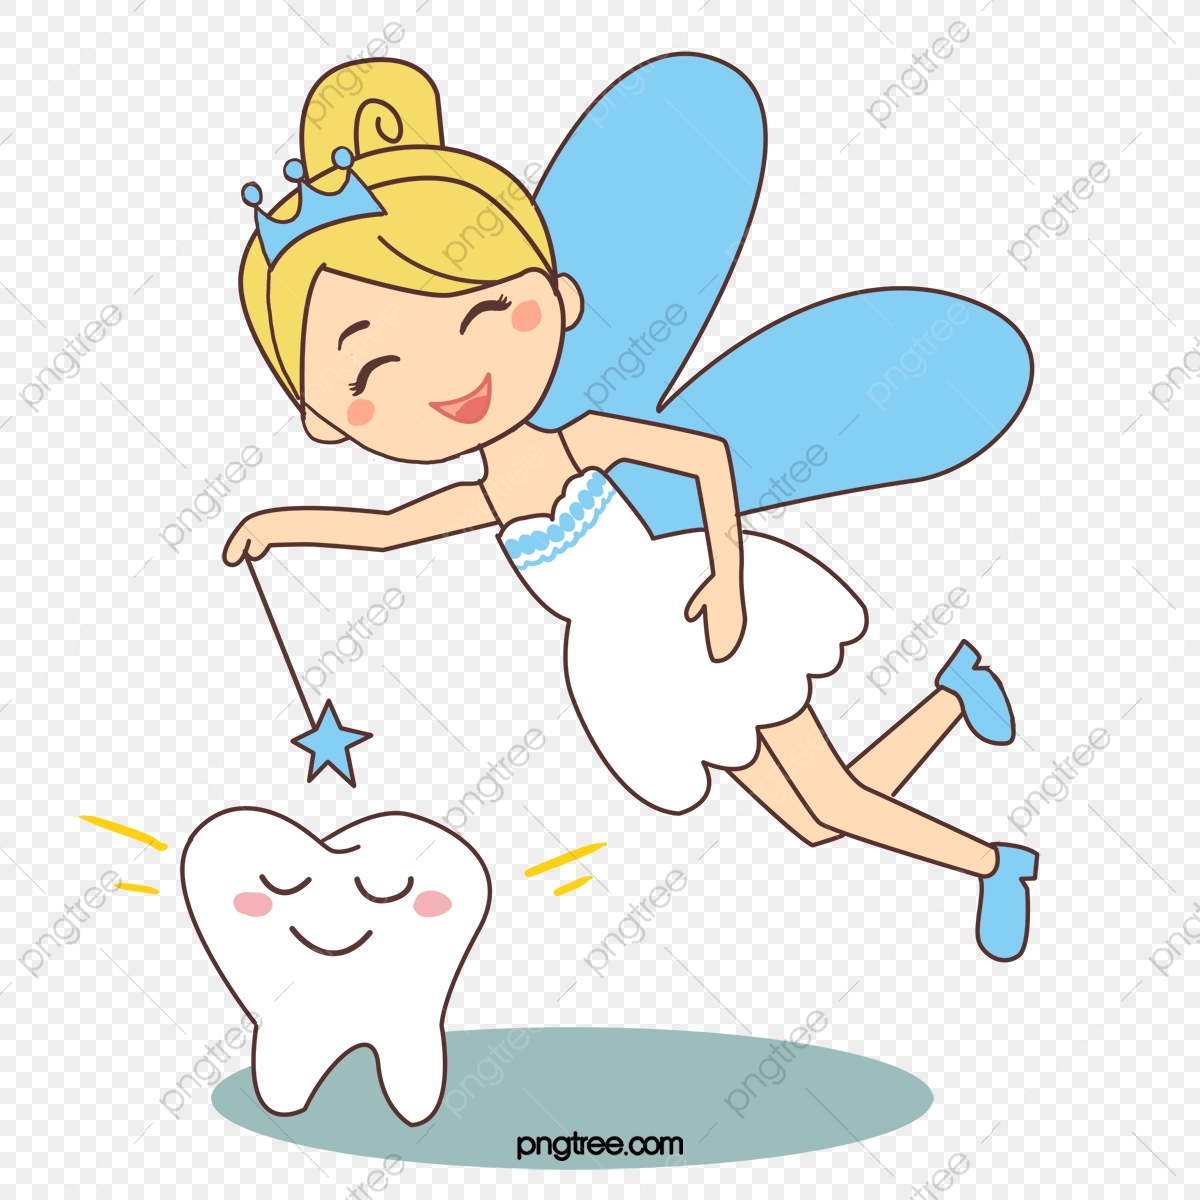 Vector Painted Small Tooth Fairy Vector Hand Painted Little Tooth Fairy Png Transparent Clipart Image And Psd File For Free Download